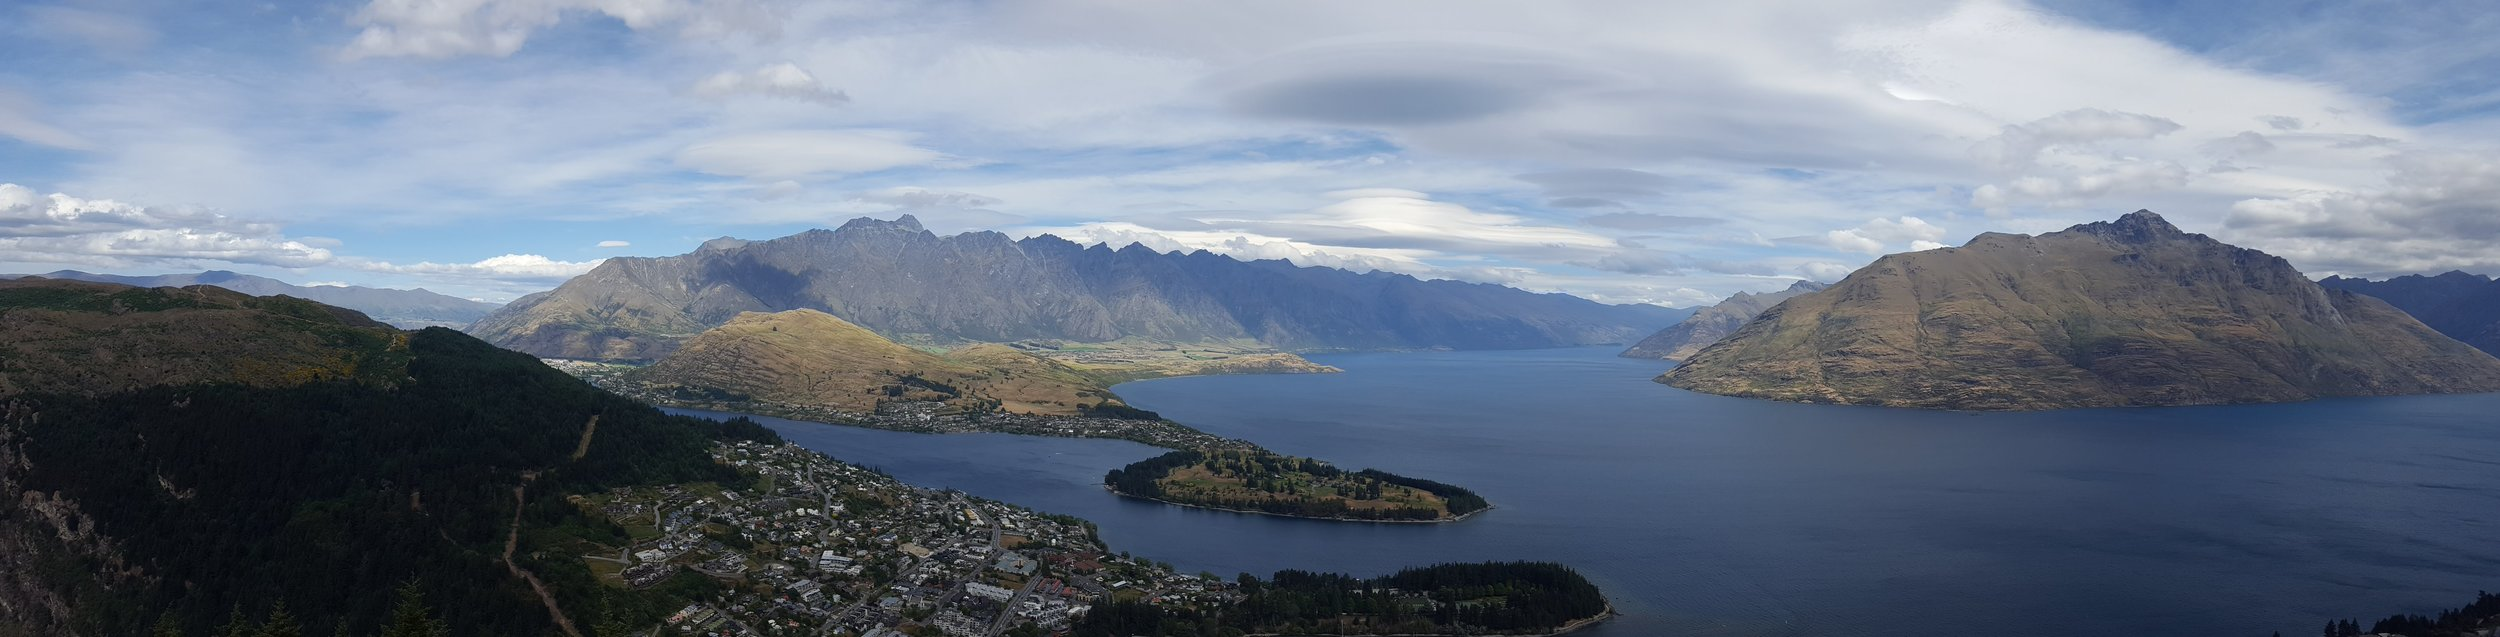 New Zealand wide view.jpg